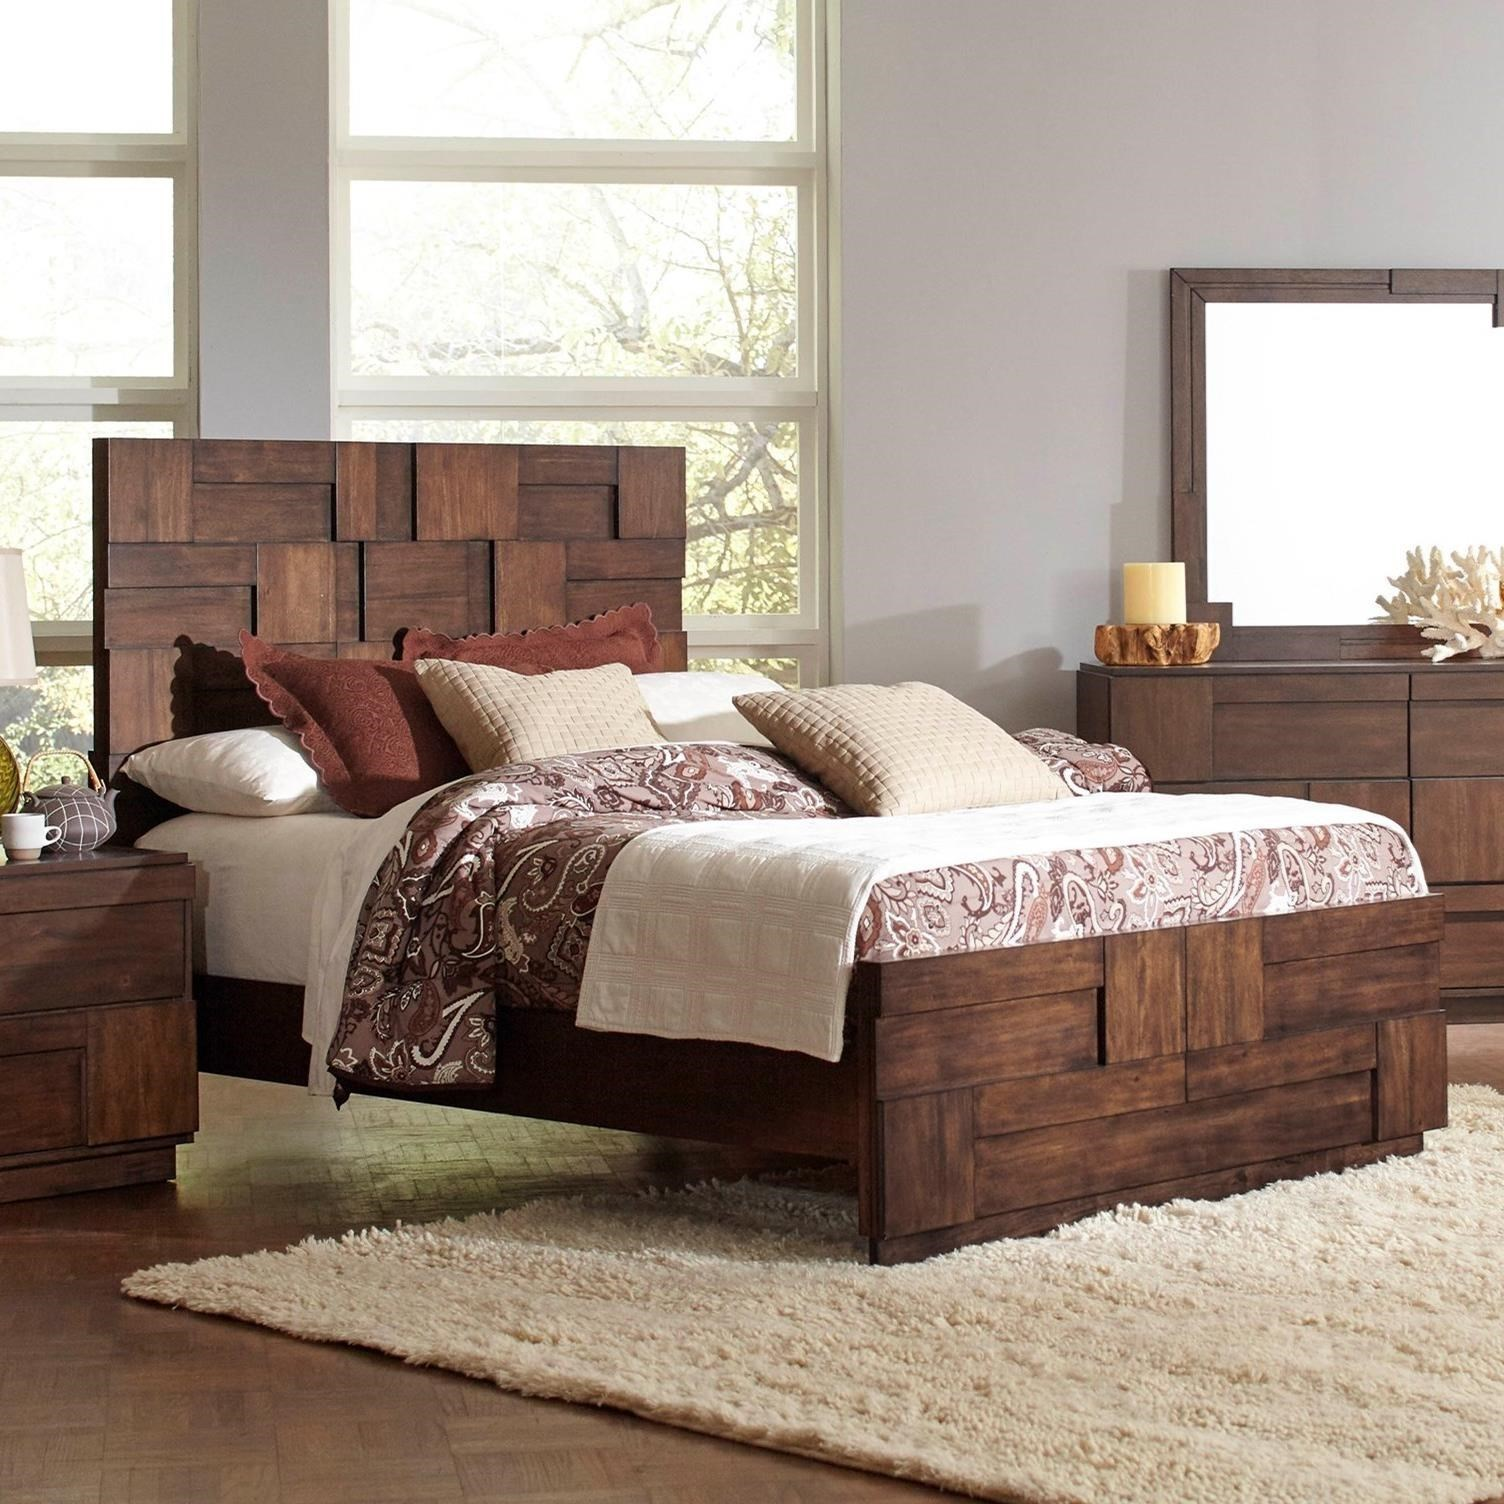 Coaster Gallagher Queen Bed - Item Number: 200851Q